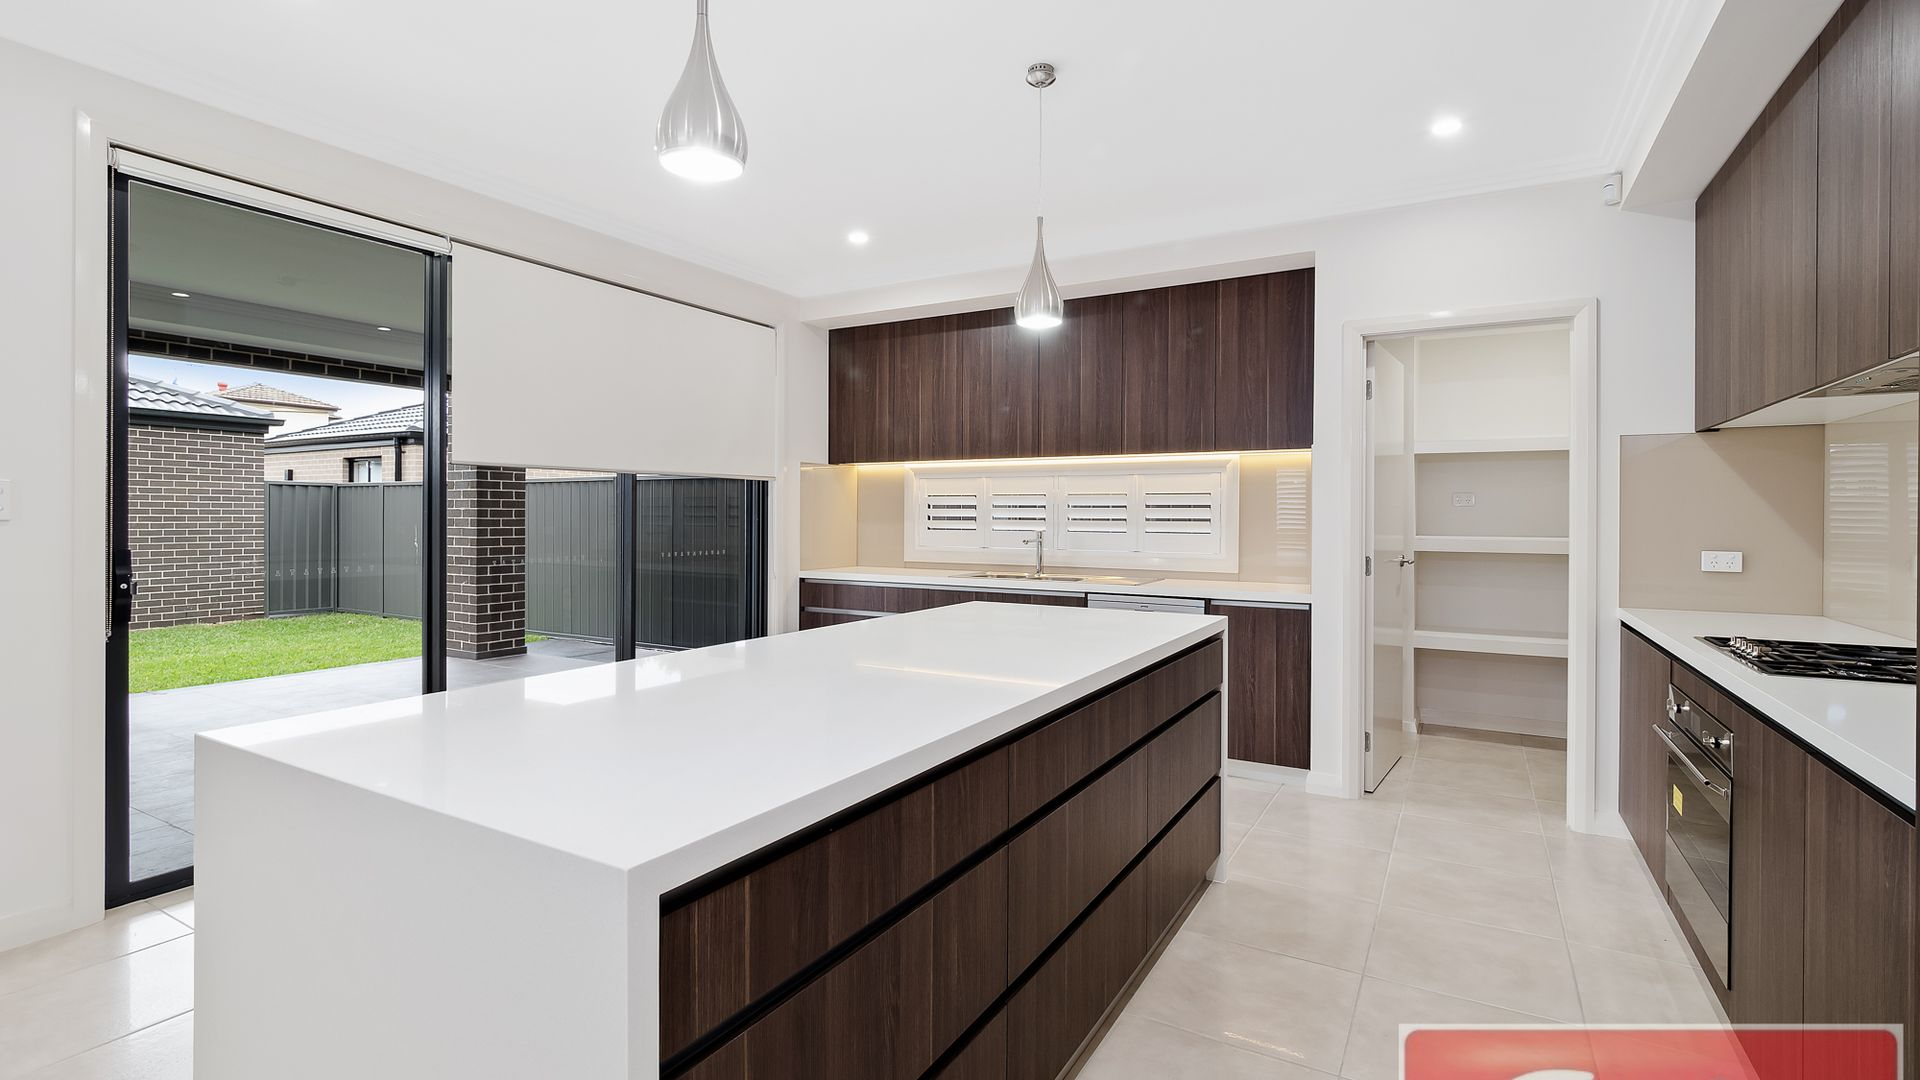 4 & 4A Player Street, St Marys NSW 2760 - House For Sale | Domain